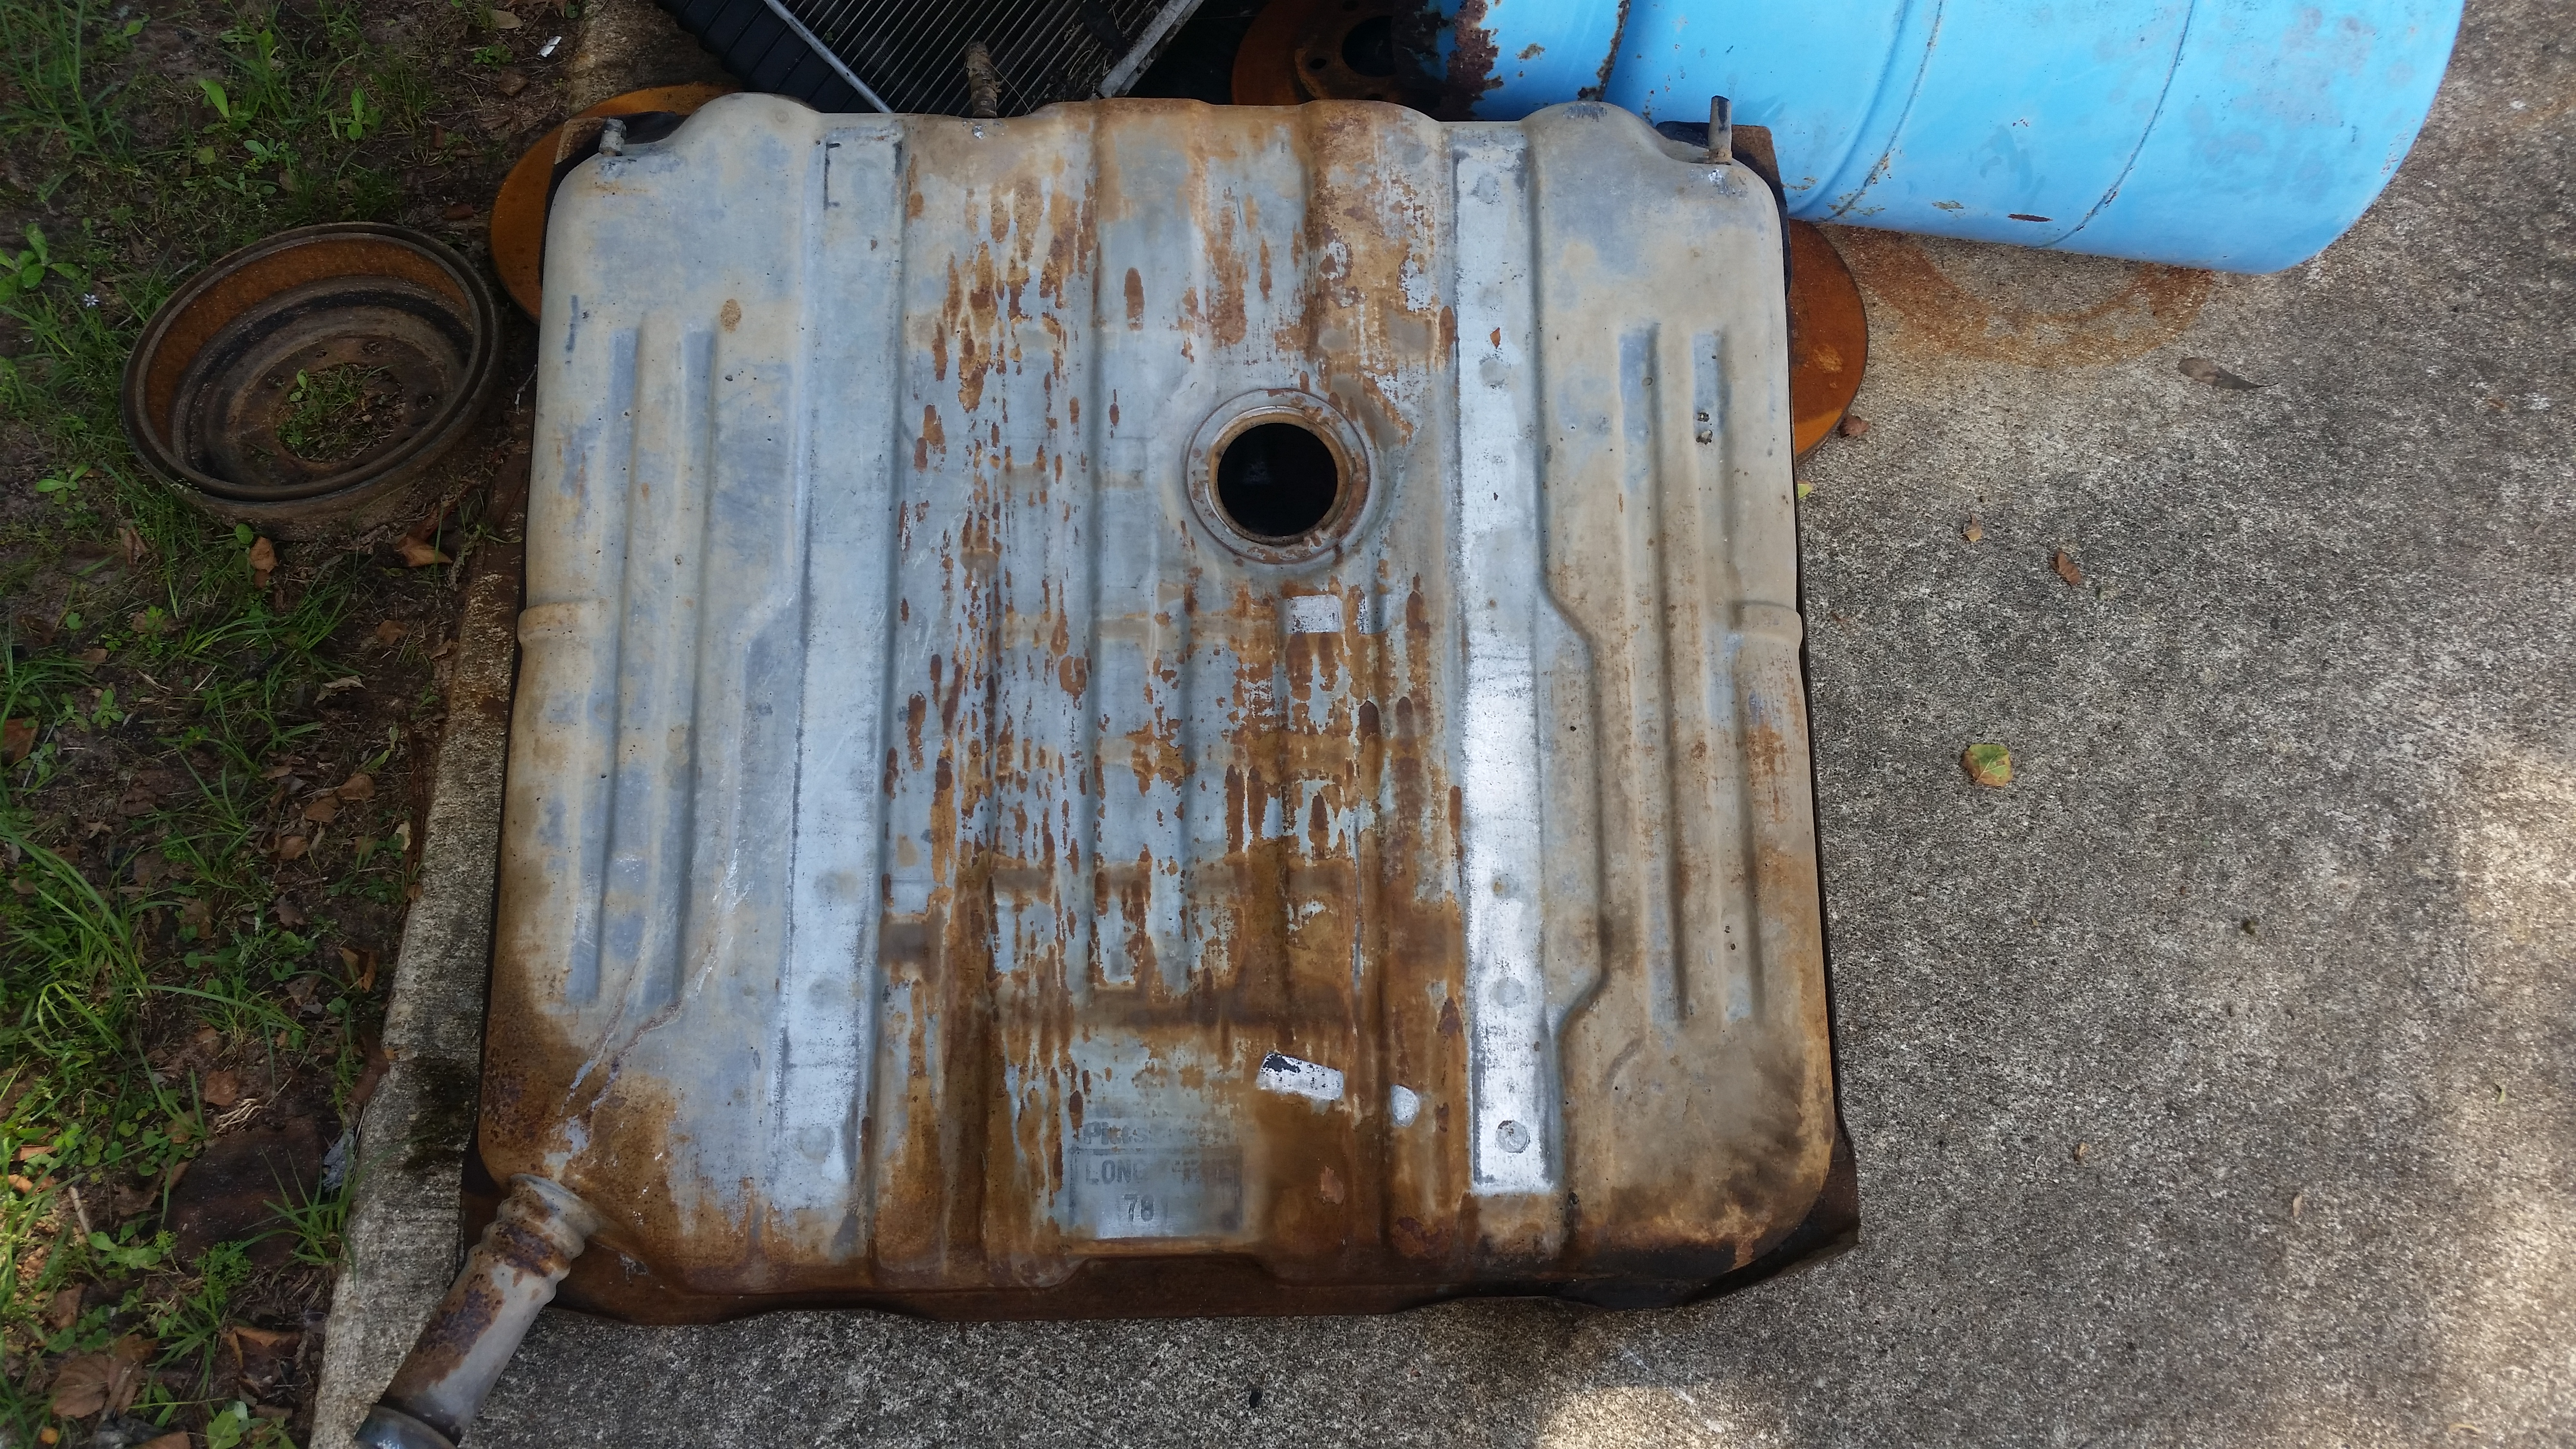 1972 buick riviera gas tank - General Discussion - Antique